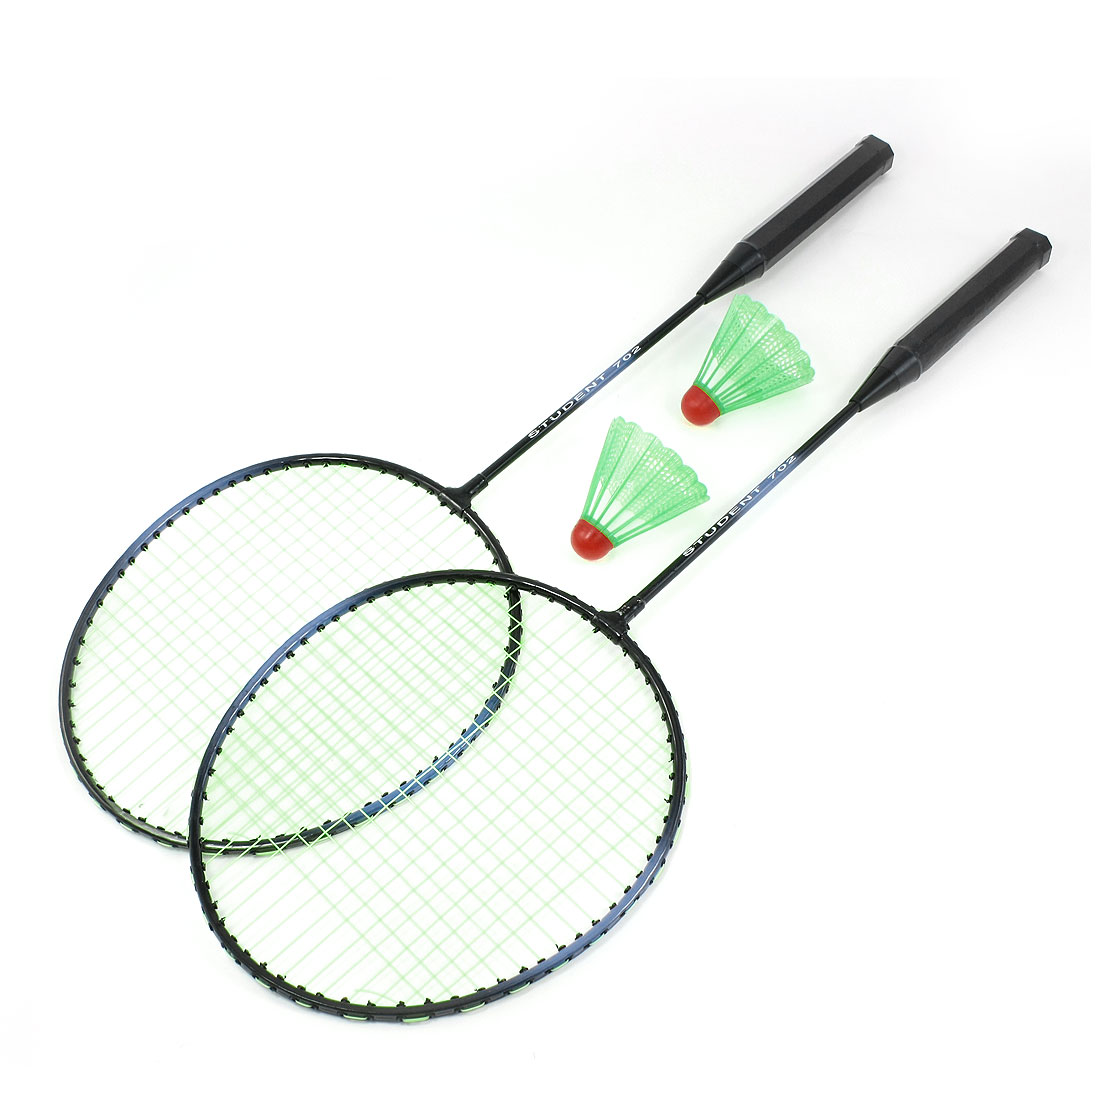 Pair Outdoor Sports Green Black Metal Frame Badminton Racket w 2 Pcs Shuttlecocks